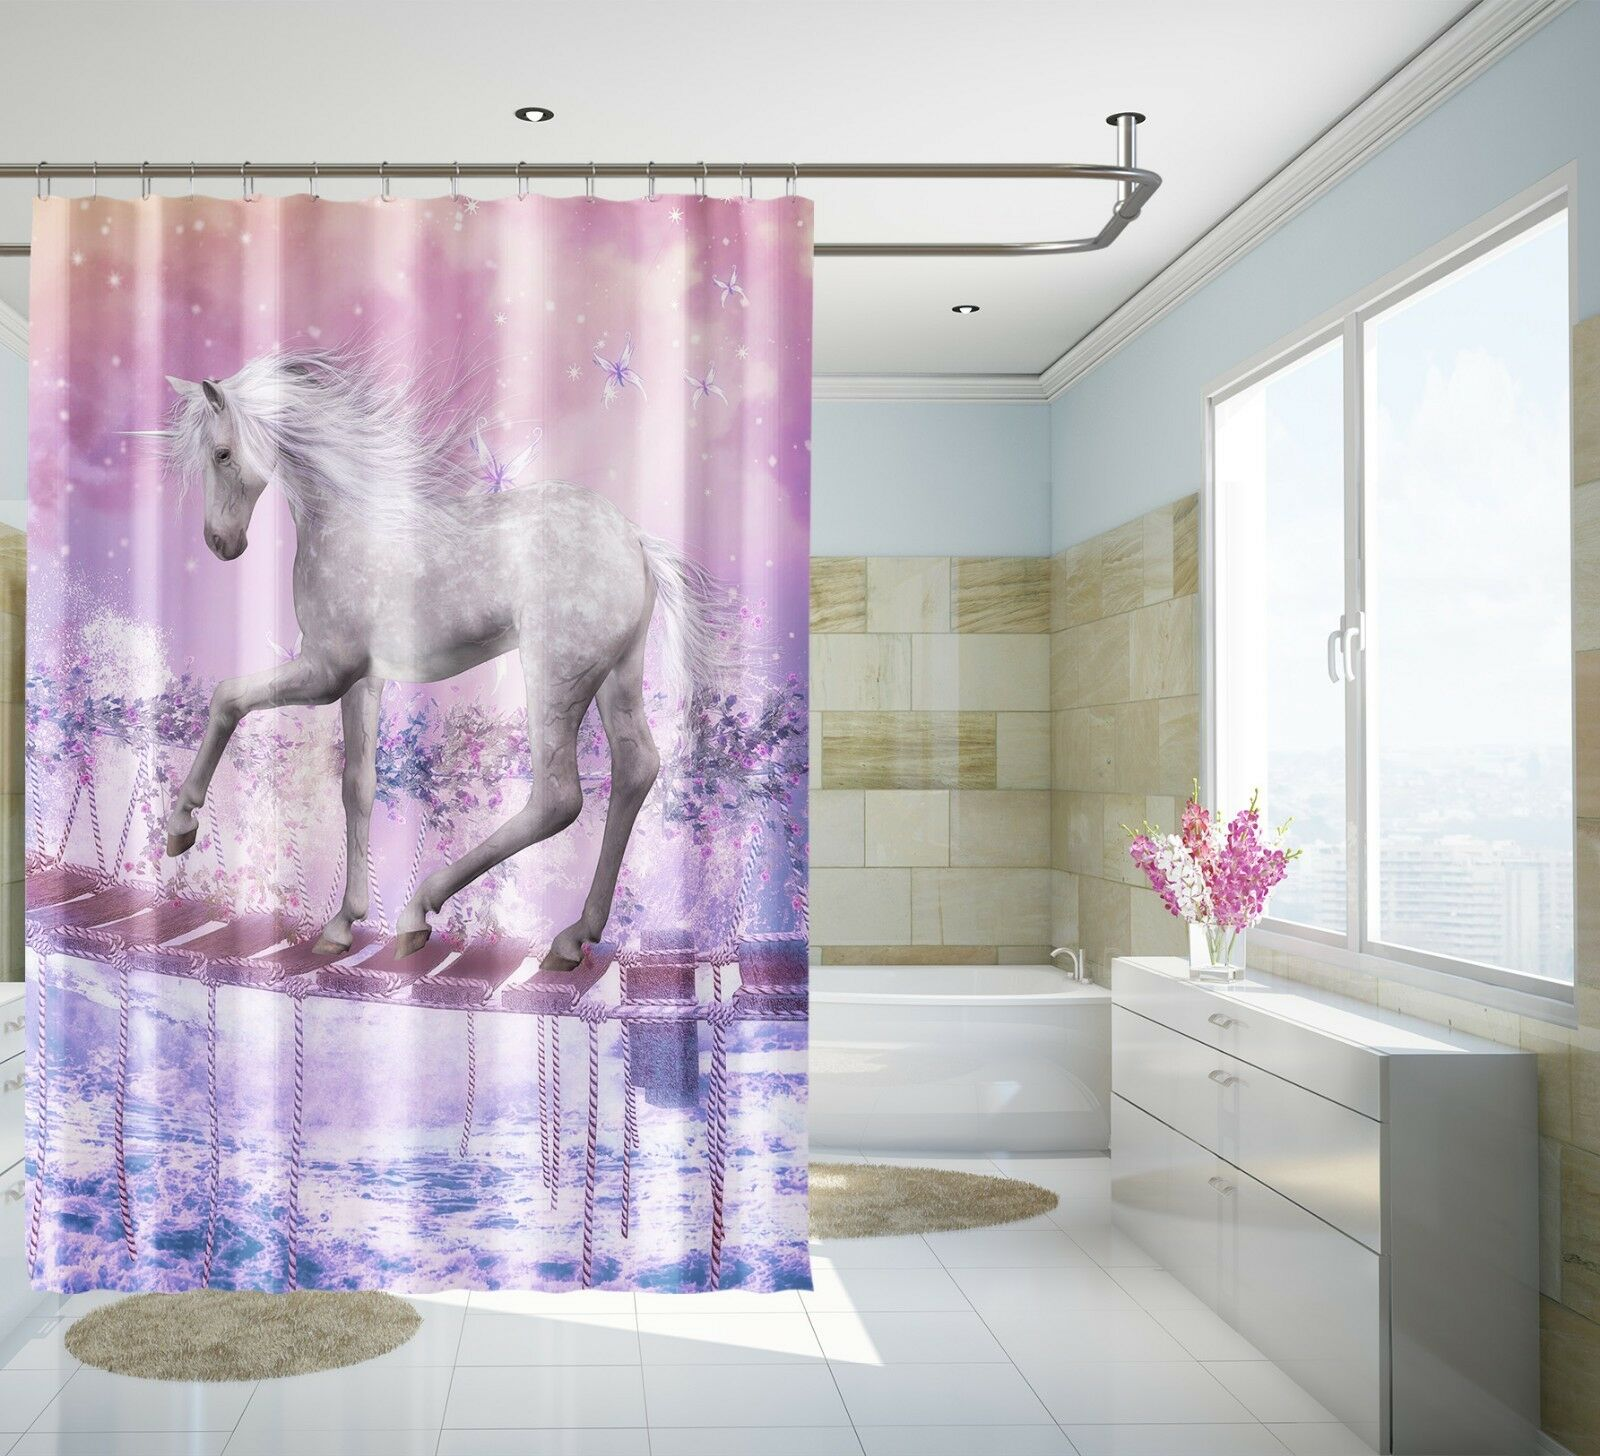 3D Licorne Rose 468 Rideau de Douche Imperméable Fibre Salle de Bain Home Windows Toilette